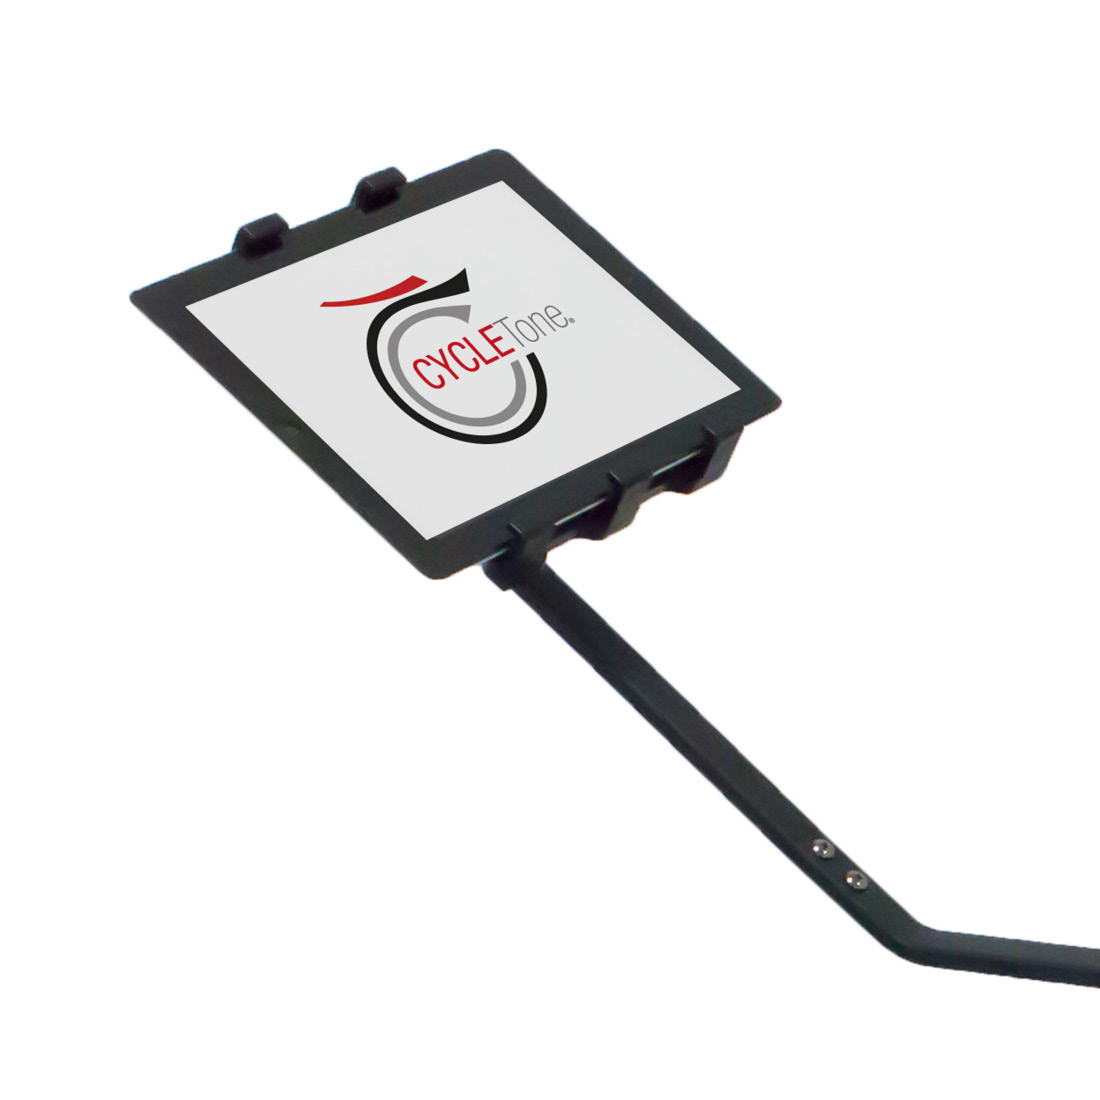 An image of Cycle Tone Tablet Stand by New Image